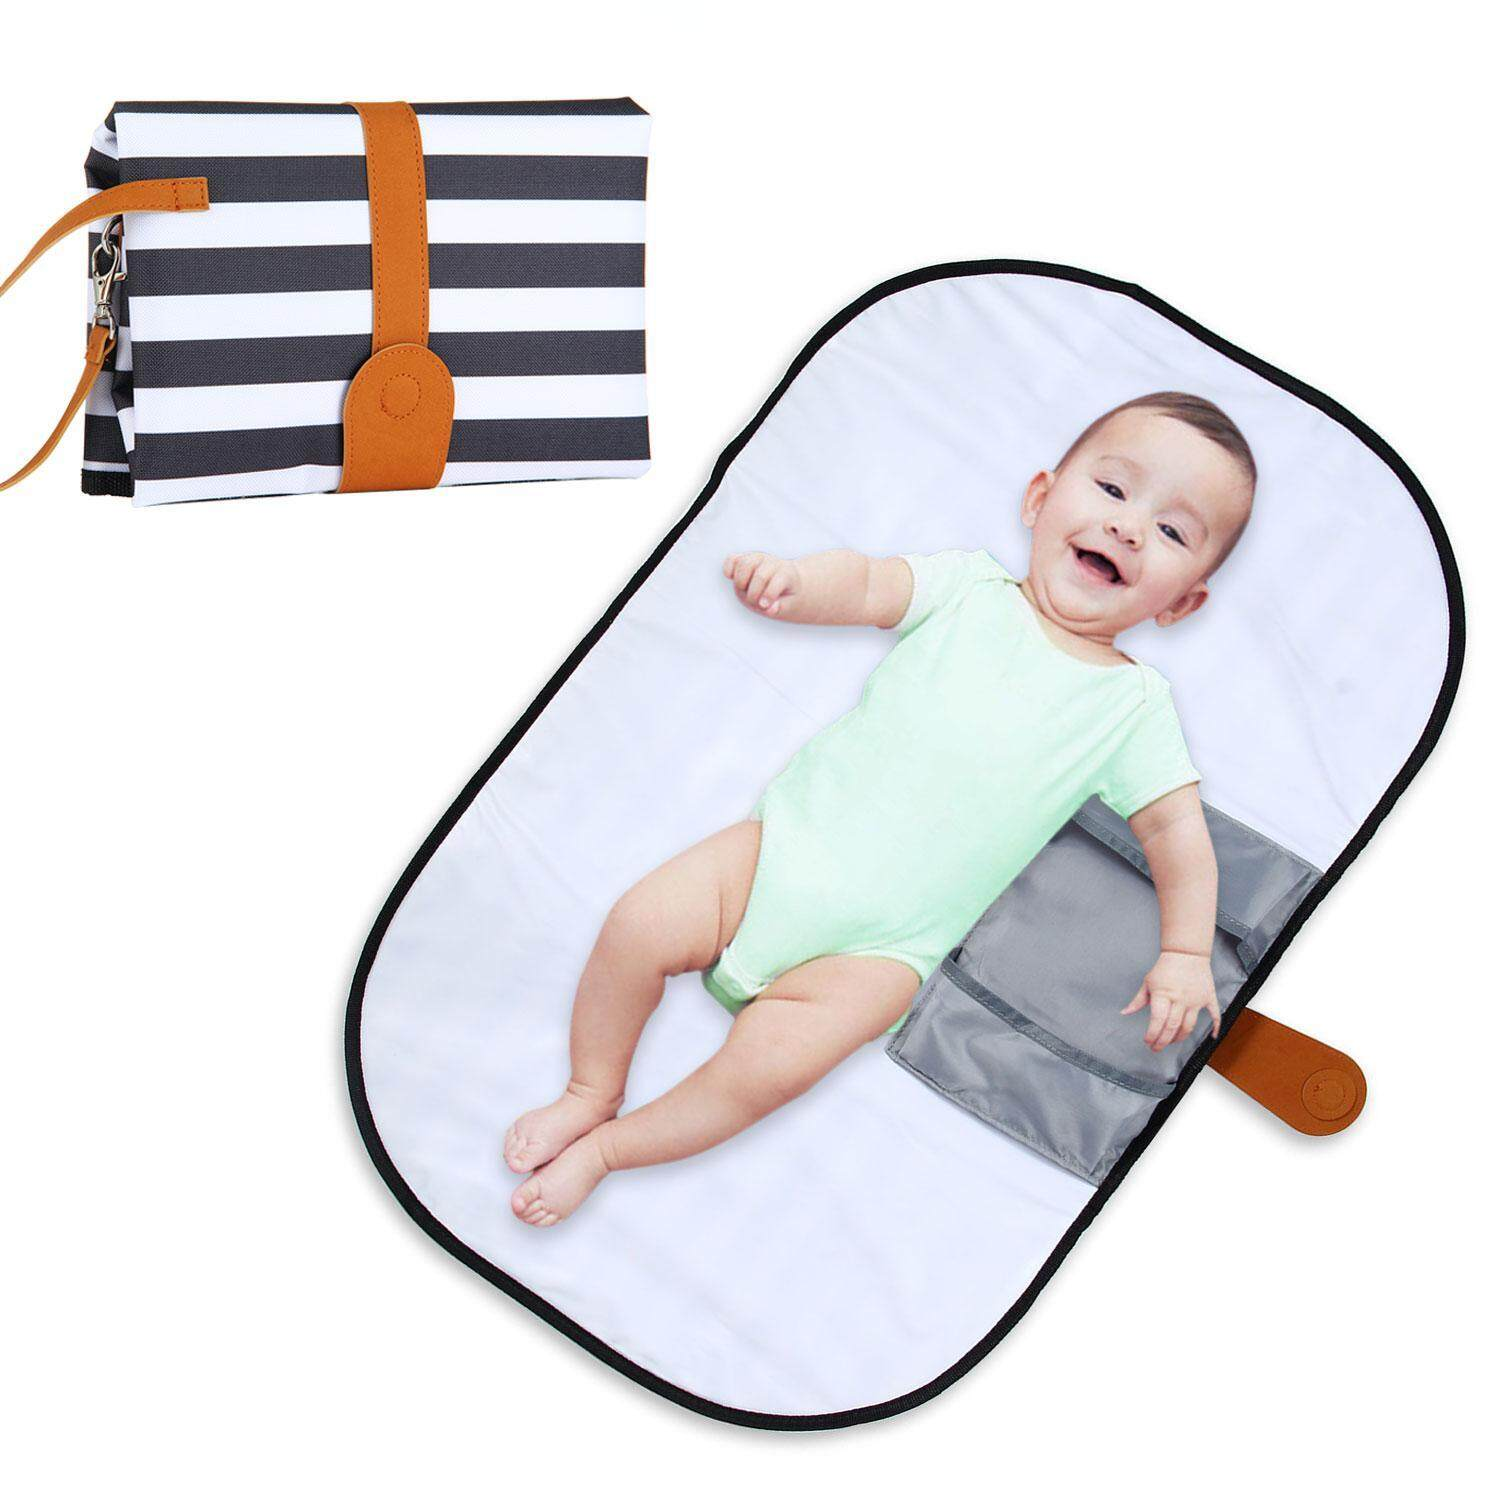 Back To Search Resultsmother & Kids Nappy Changing Mat Baby Nursing Waterproof Diaper Changing Pad Baby Changing Kit For Home Travel Outside Quality Easy To Carry